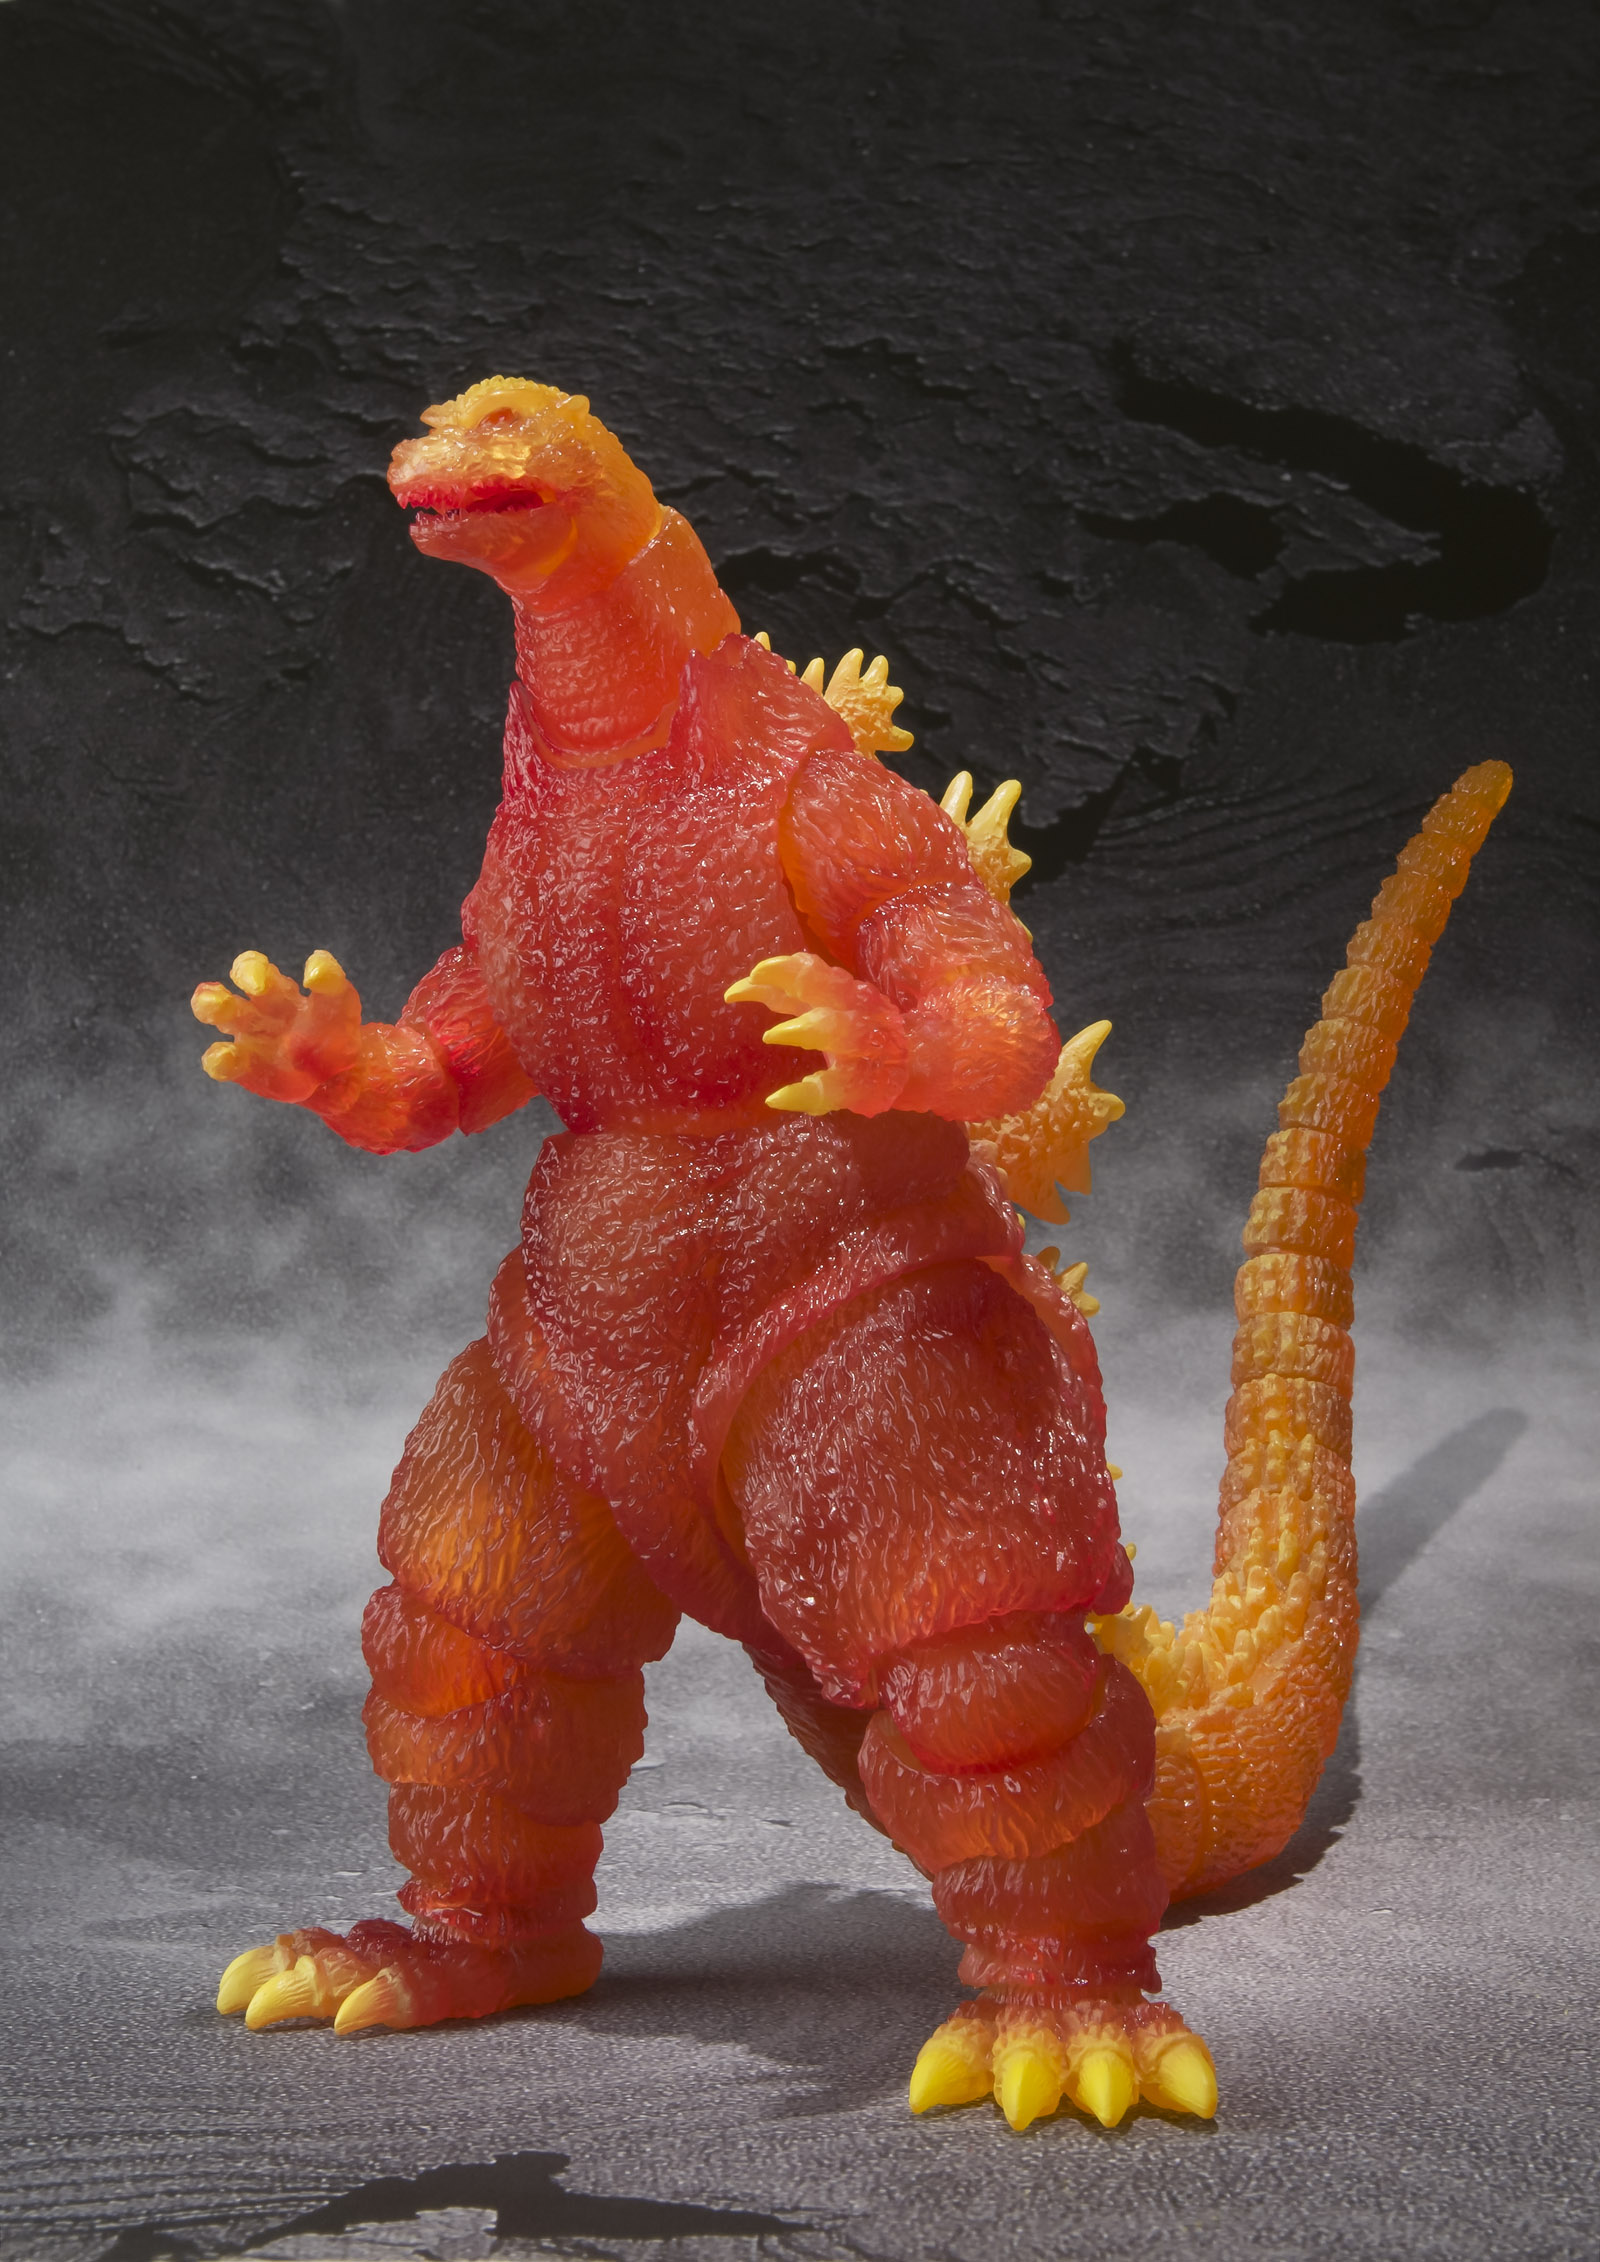 SDCC Exclusive S.H. MonsterArts Godzilla 1 S.H. MonsterArts Godzilla Comic Con Explosion 2012 SDCC Exclusive